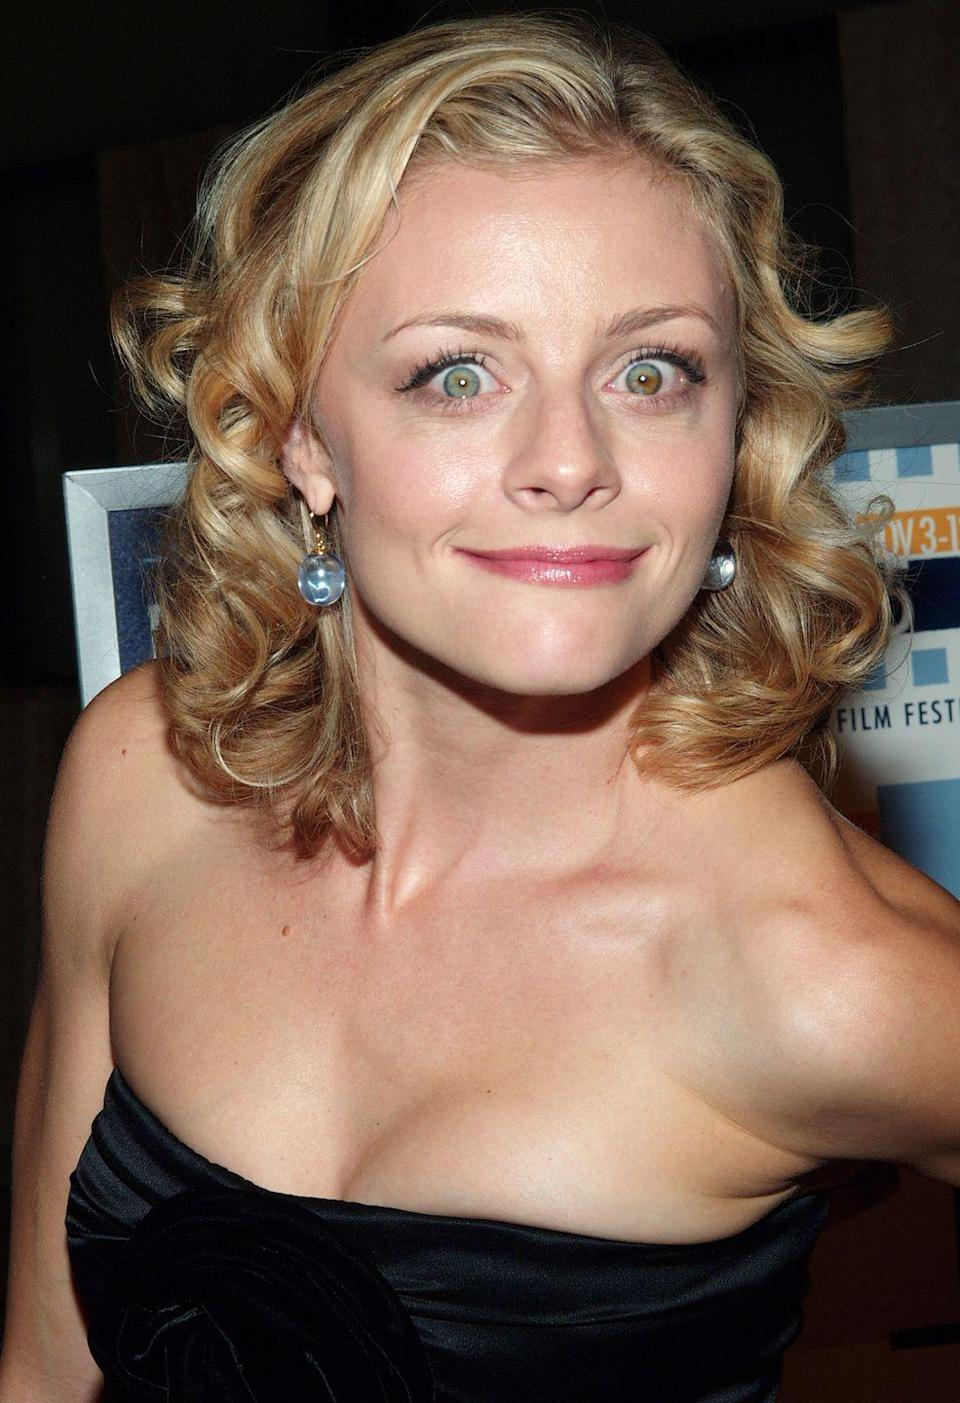 """<p>Cauffiel, best known for her role in <em><a href=""""https://www.amazon.com/Legally-Blonde-Reese-Witherspoon/dp/B000VCLGBY/ref=sr_1_1?keywords=legally+blonde&qid=1584979432&sr=8-1&tag=syn-yahoo-20&ascsubtag=%5Bartid%7C10055.g.2844%5Bsrc%7Cyahoo-us"""" rel=""""nofollow noopener"""" target=""""_blank"""" data-ylk=""""slk:Legally Blonde"""" class=""""link rapid-noclick-resp"""">Legally Blonde</a></em>, has one green eye and one green and brown eye.</p><p><strong>RELATED:</strong> <a href=""""https://www.goodhousekeeping.com/life/entertainment/g3243/best-romantic-comedy-movies/"""" rel=""""nofollow noopener"""" target=""""_blank"""" data-ylk=""""slk:The 60 Best Romantic Comedies of All Time to Stream Right Now"""" class=""""link rapid-noclick-resp"""">The 60 Best Romantic Comedies of All Time to Stream Right Now</a></p>"""